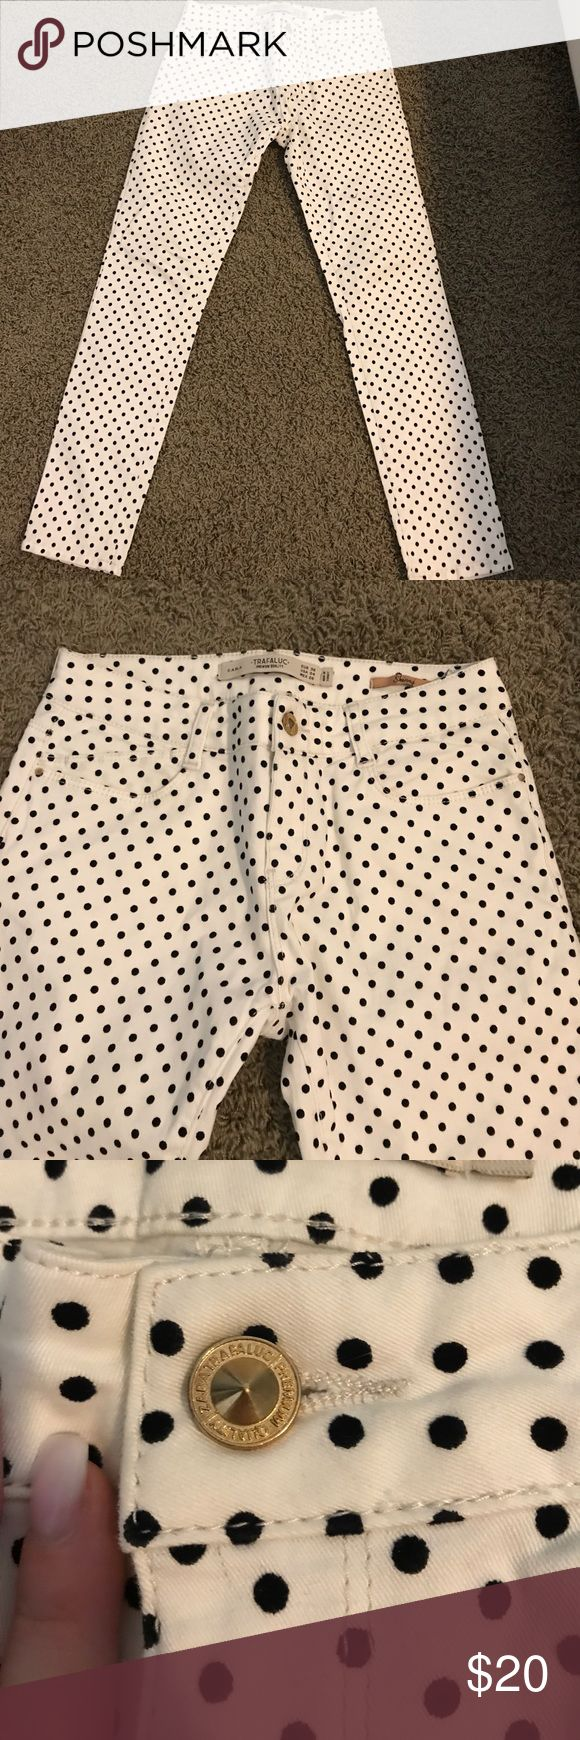 Polka Dot Pants Polka dot pants. The dots are raised and fuzzy. It zips up and buttons in the front. It has functional pockets on the front and back. They are skinny jeans. There are no signs of wear on the garment. Zara Pants Skinny